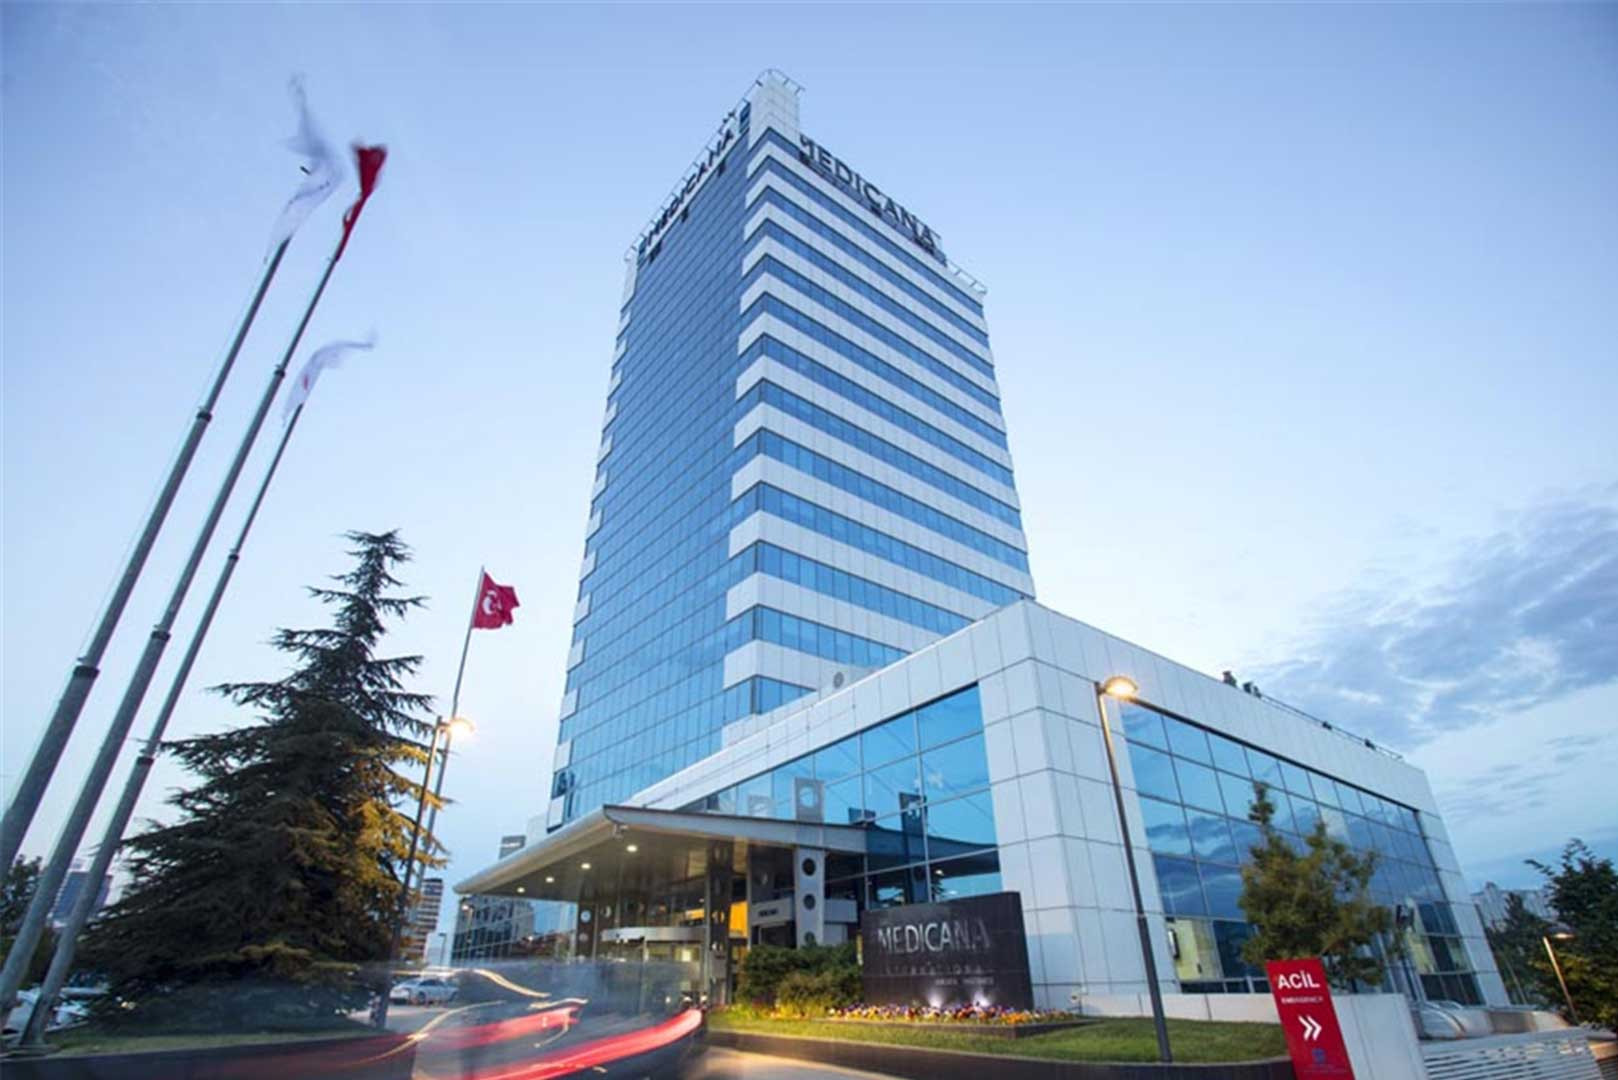 https://www.medicanahealthpoint.com/wp-content/uploads/2020/10/medicana-international-ankara-hospital.jpg